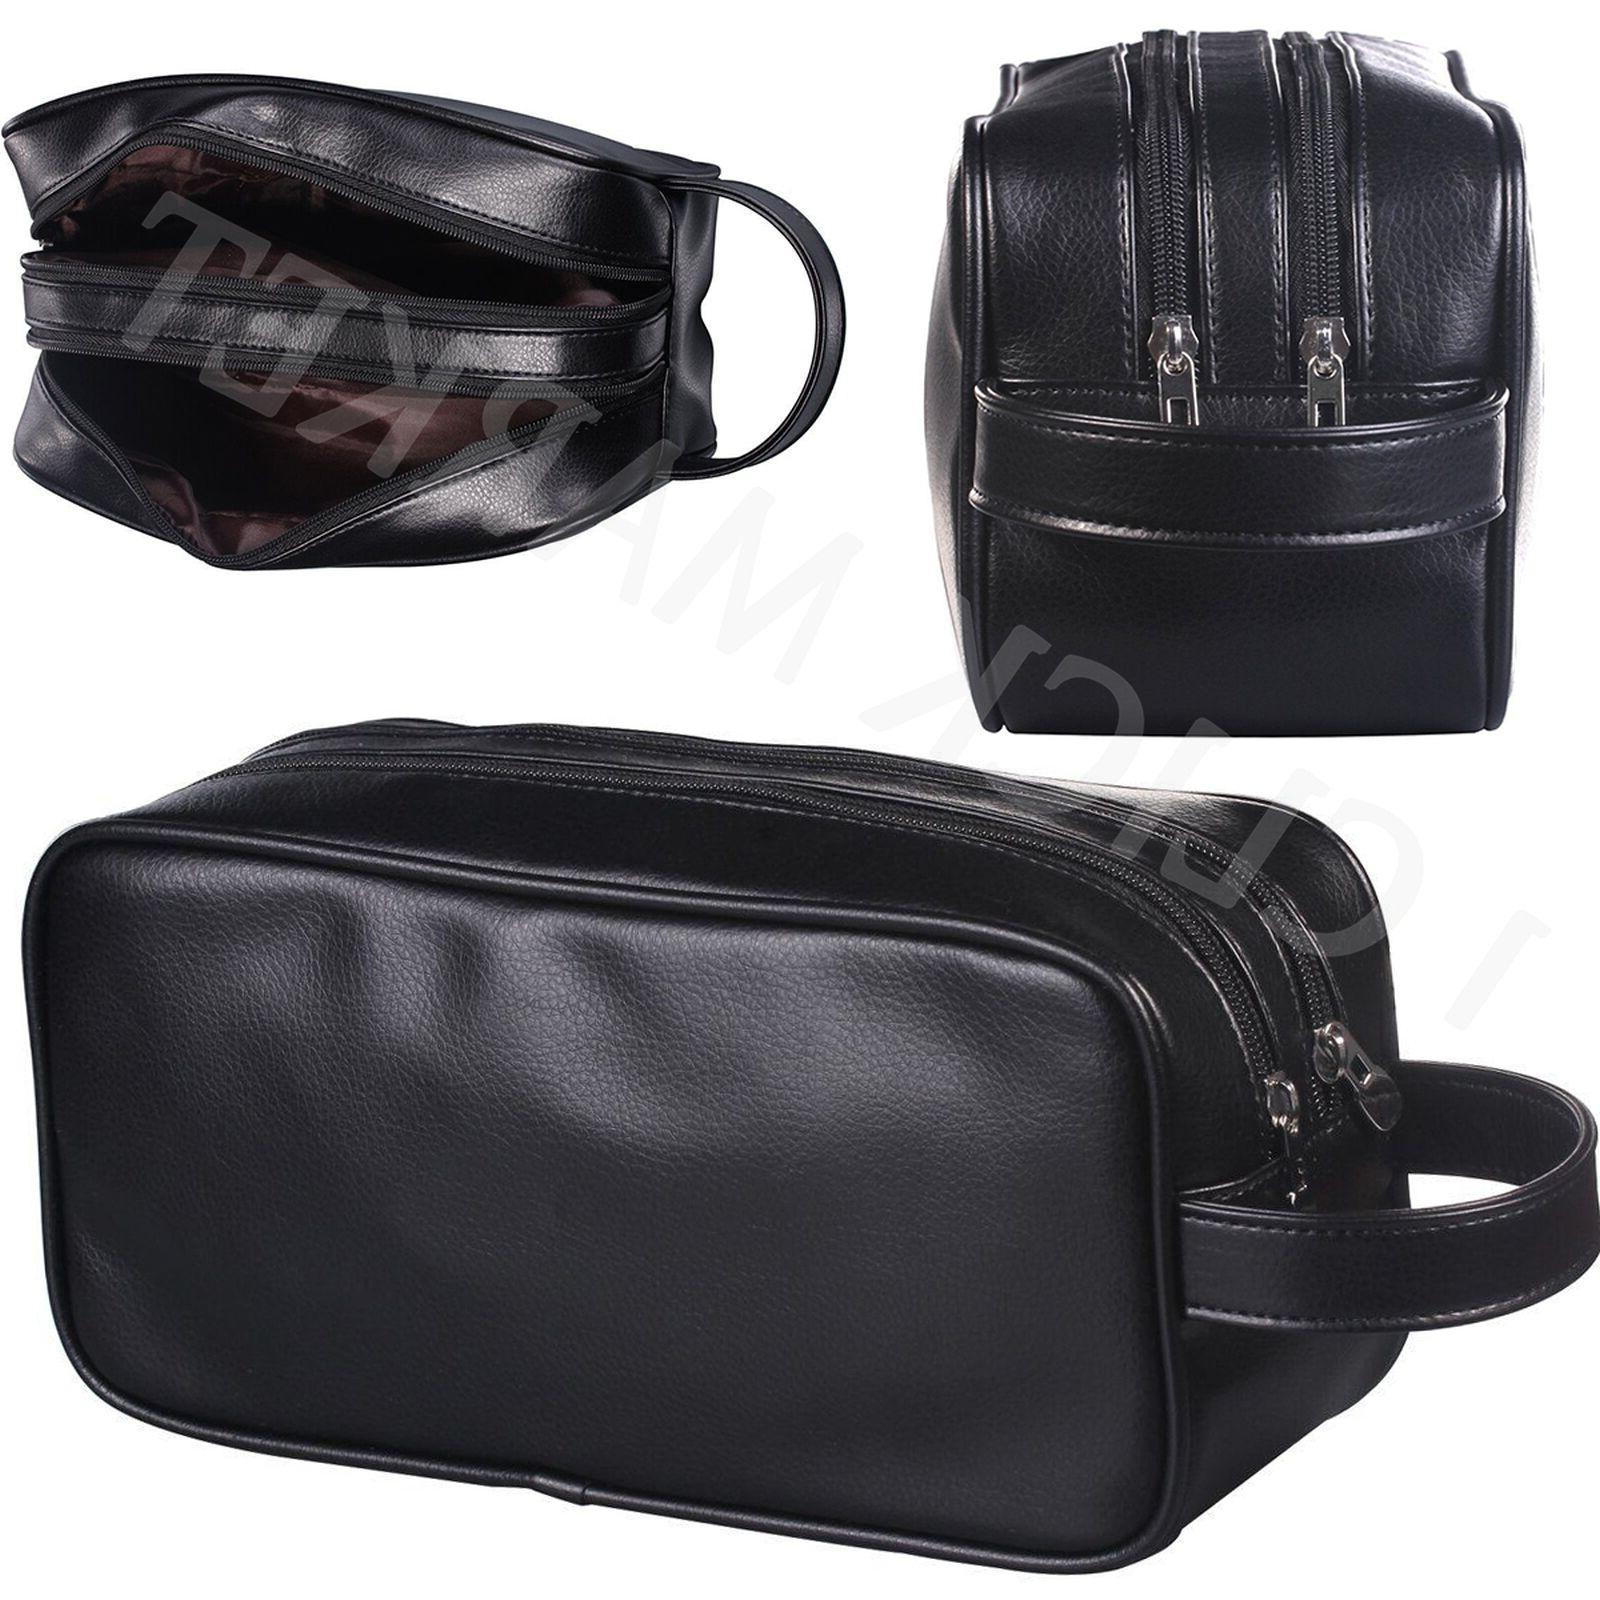 d429772be3 Genuine Leather Dopp Kit Shaving Accessory Toiletry Travel B